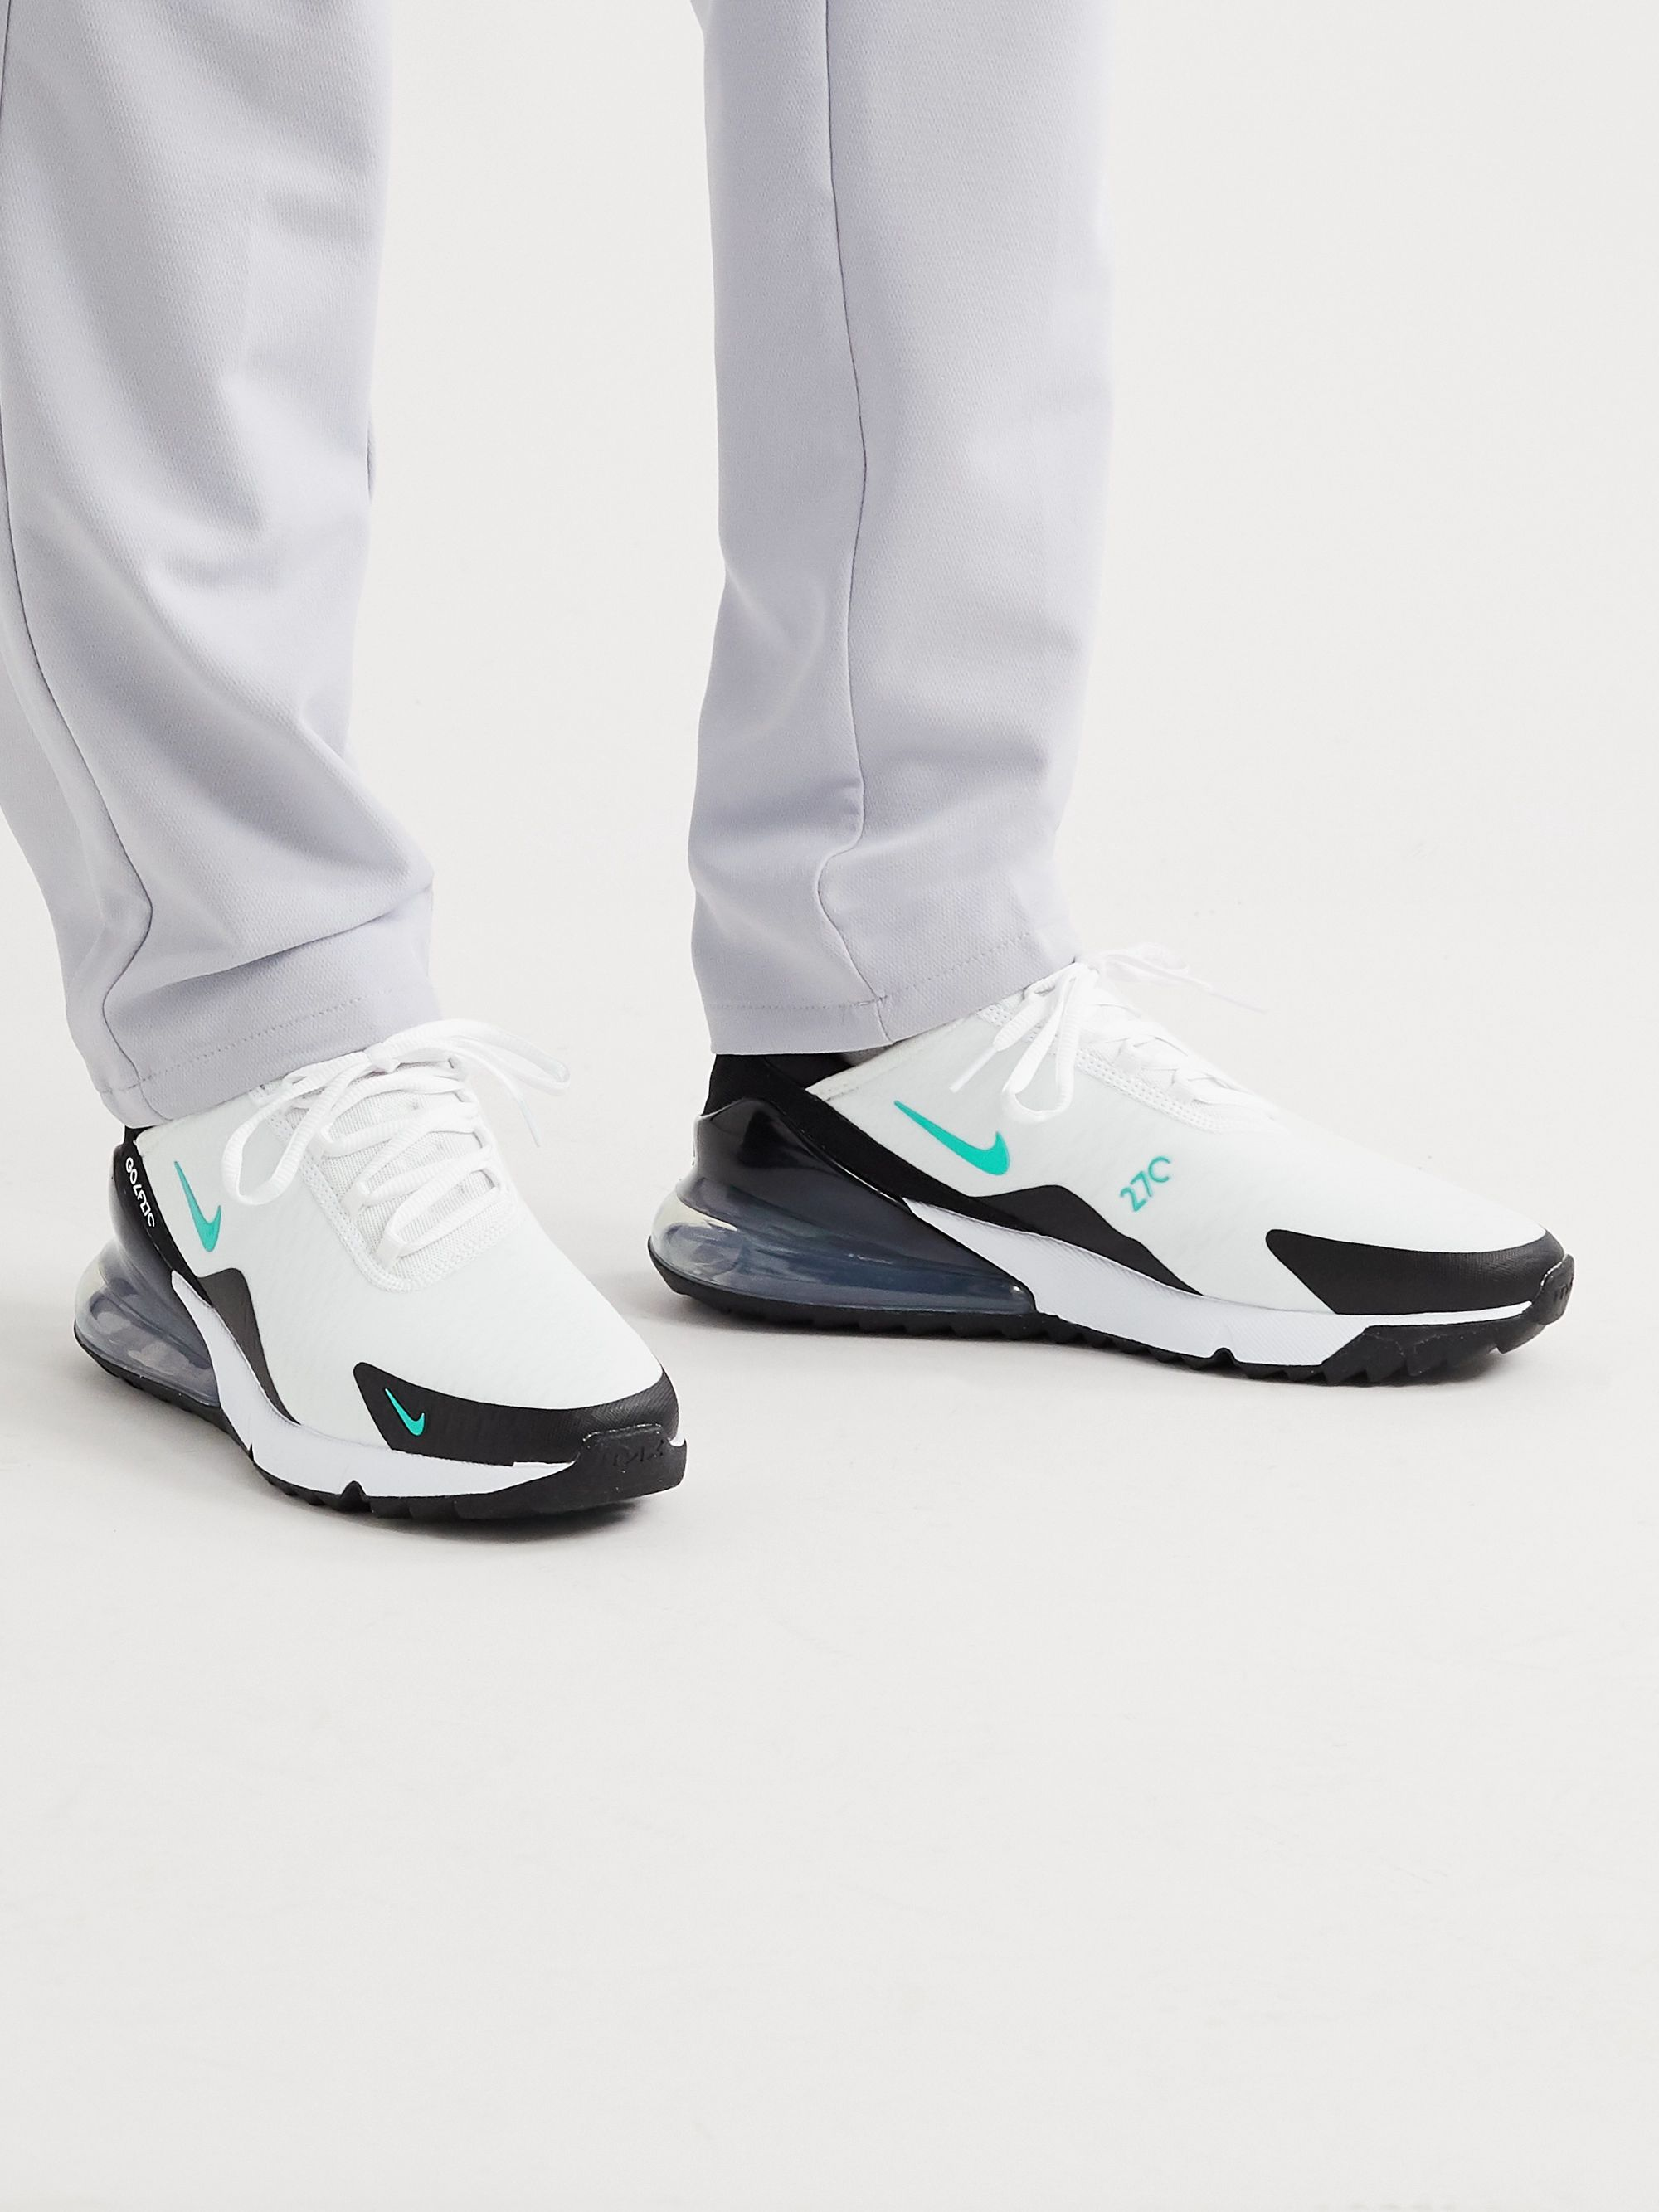 White Air Max 270 G Rubber Trimmed Coated Mesh Golf Shoes Nike Golf Mr Porter